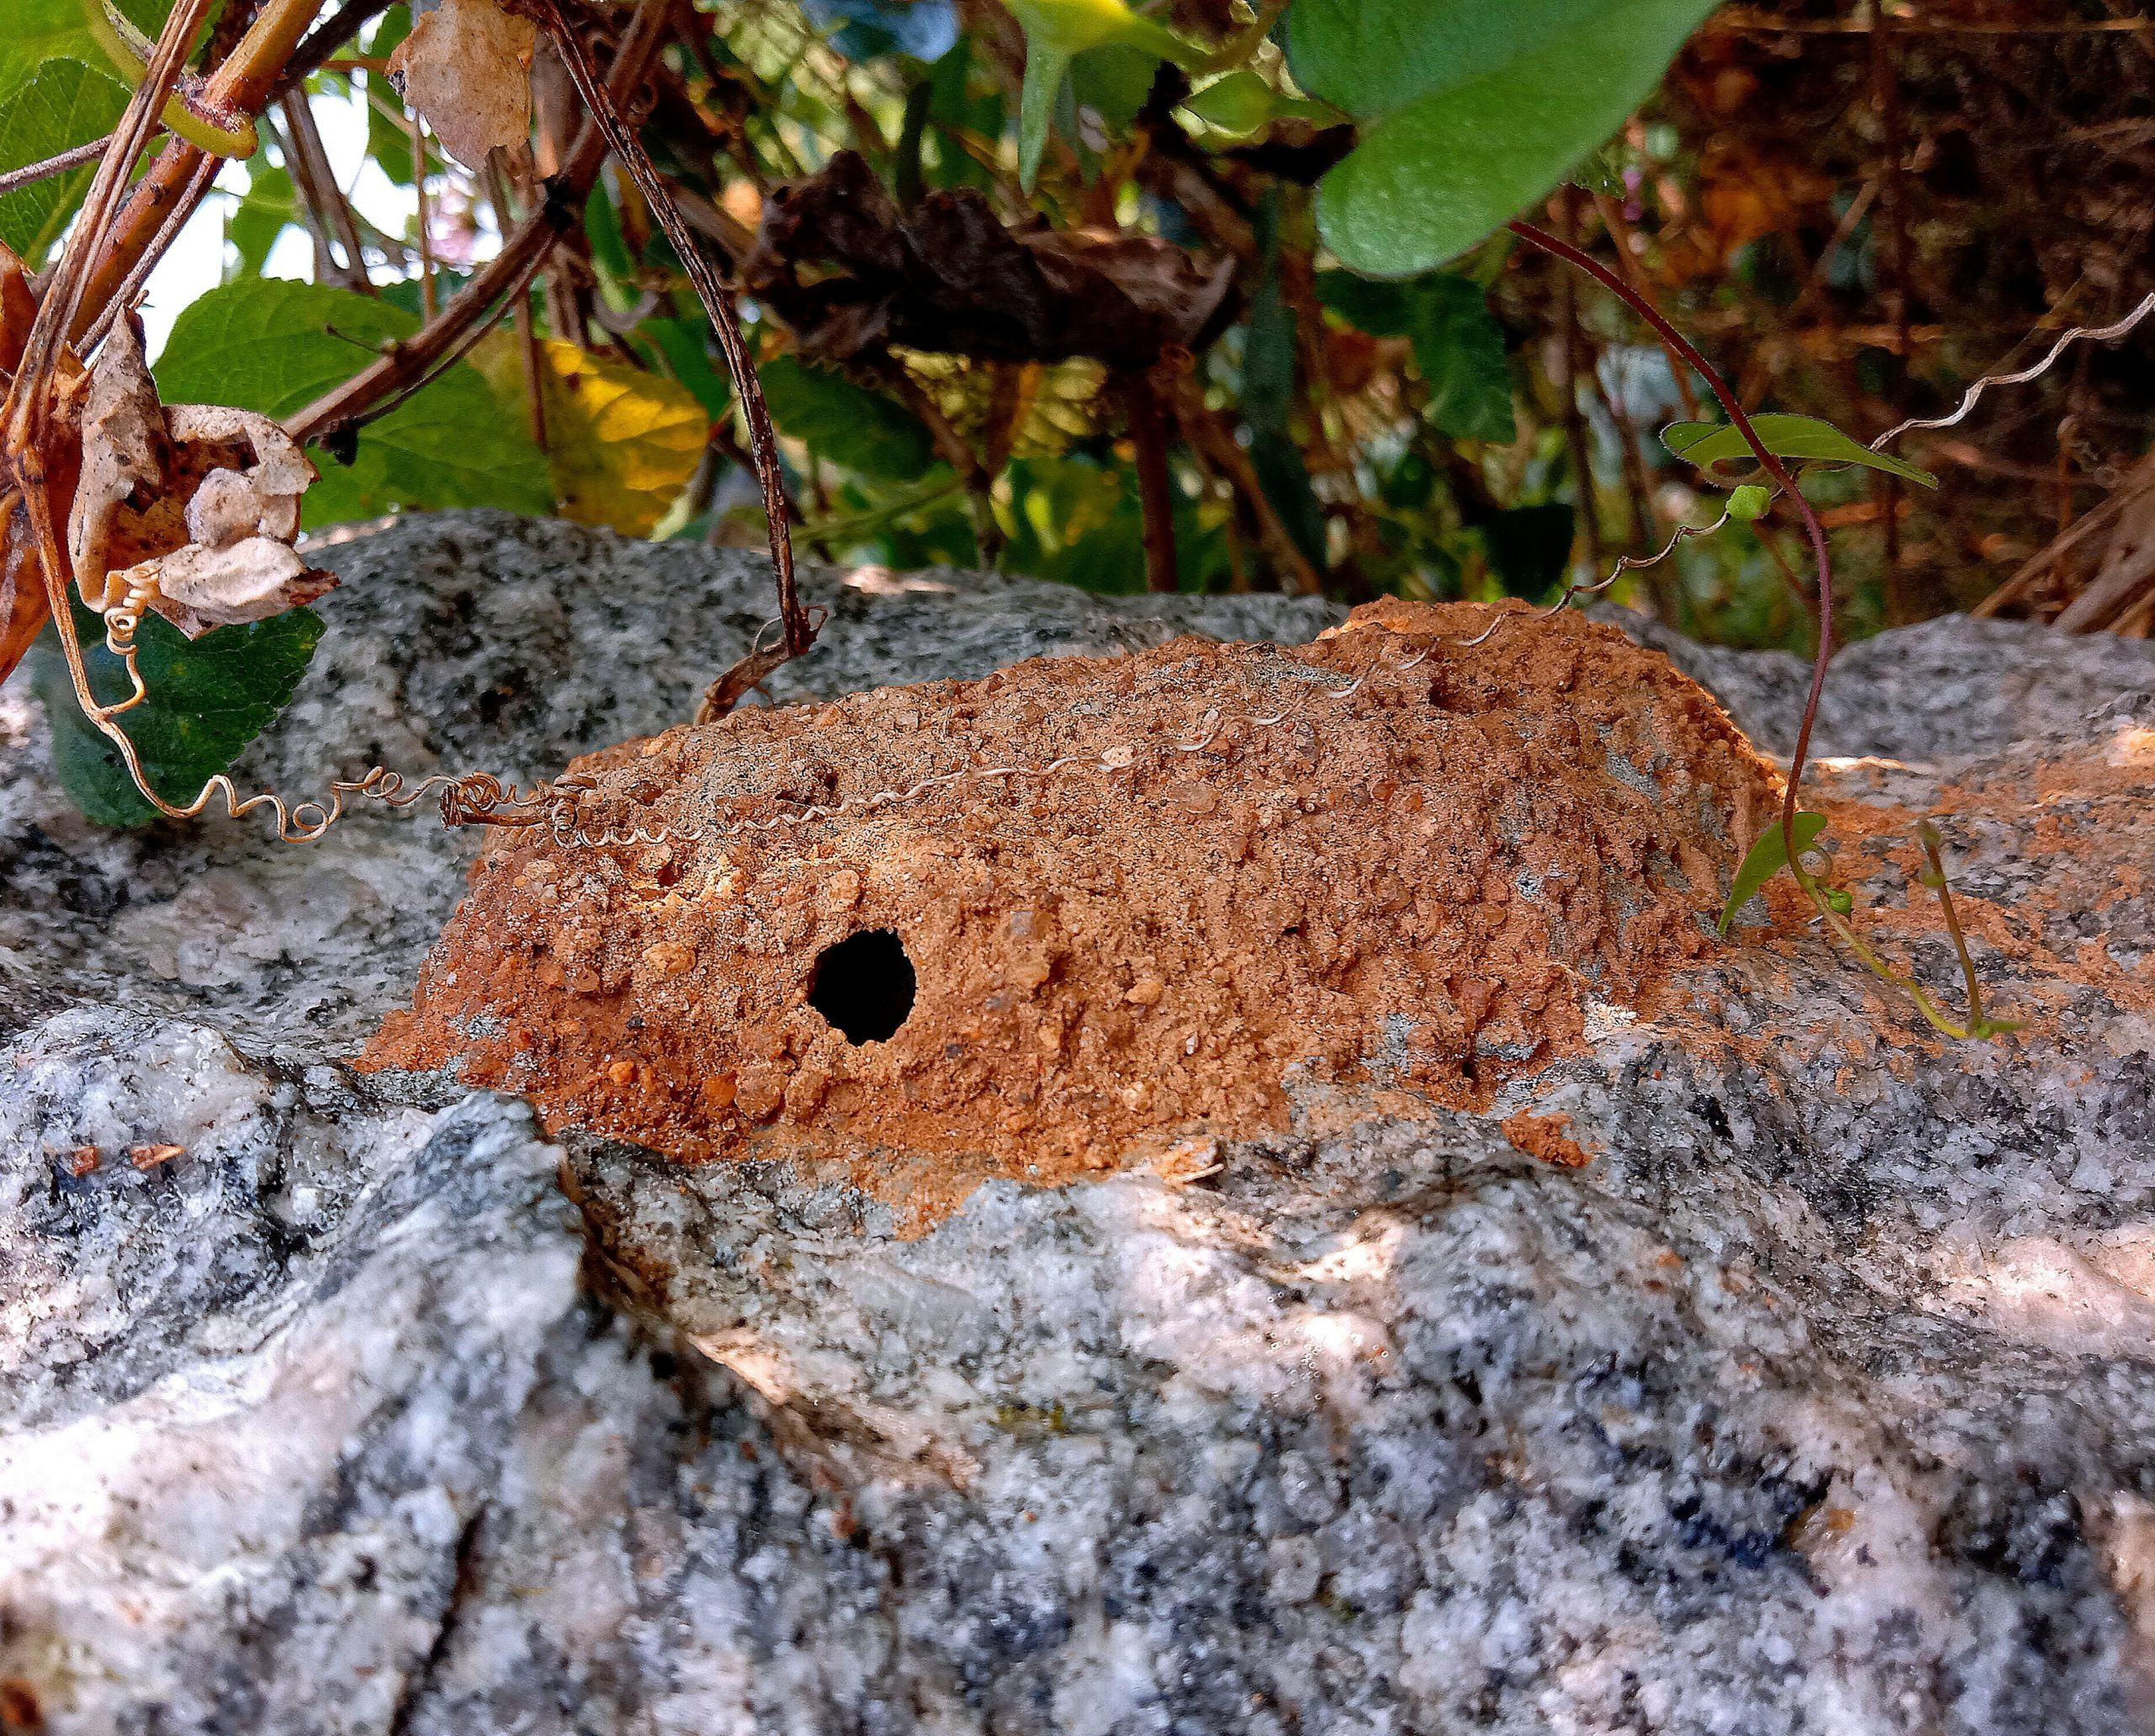 Ground nest of an insect